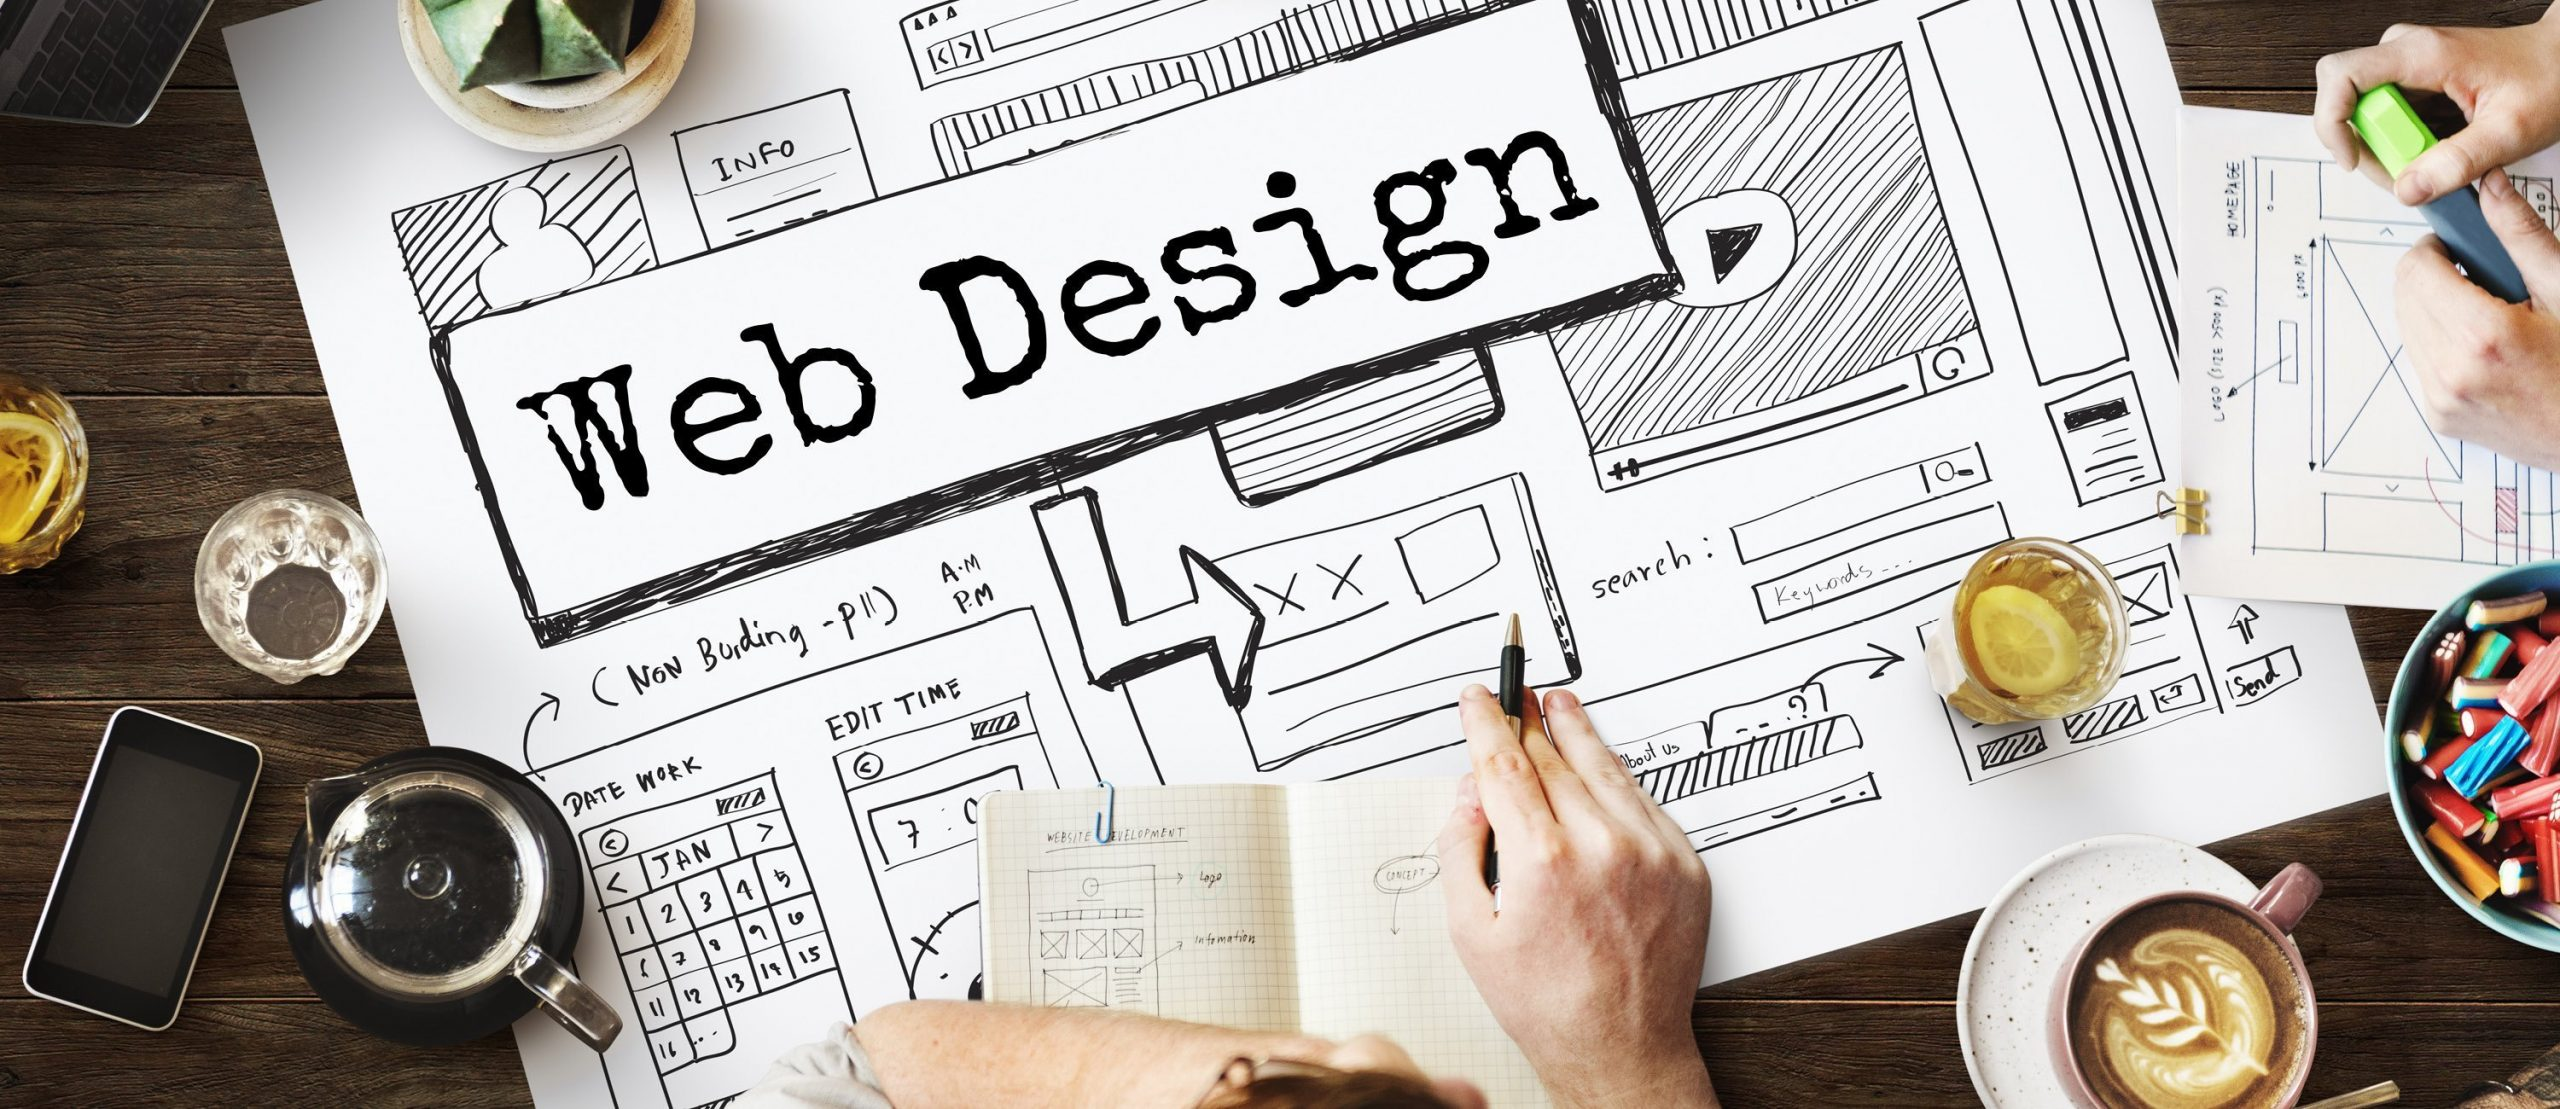 Web design strategy and visual process.